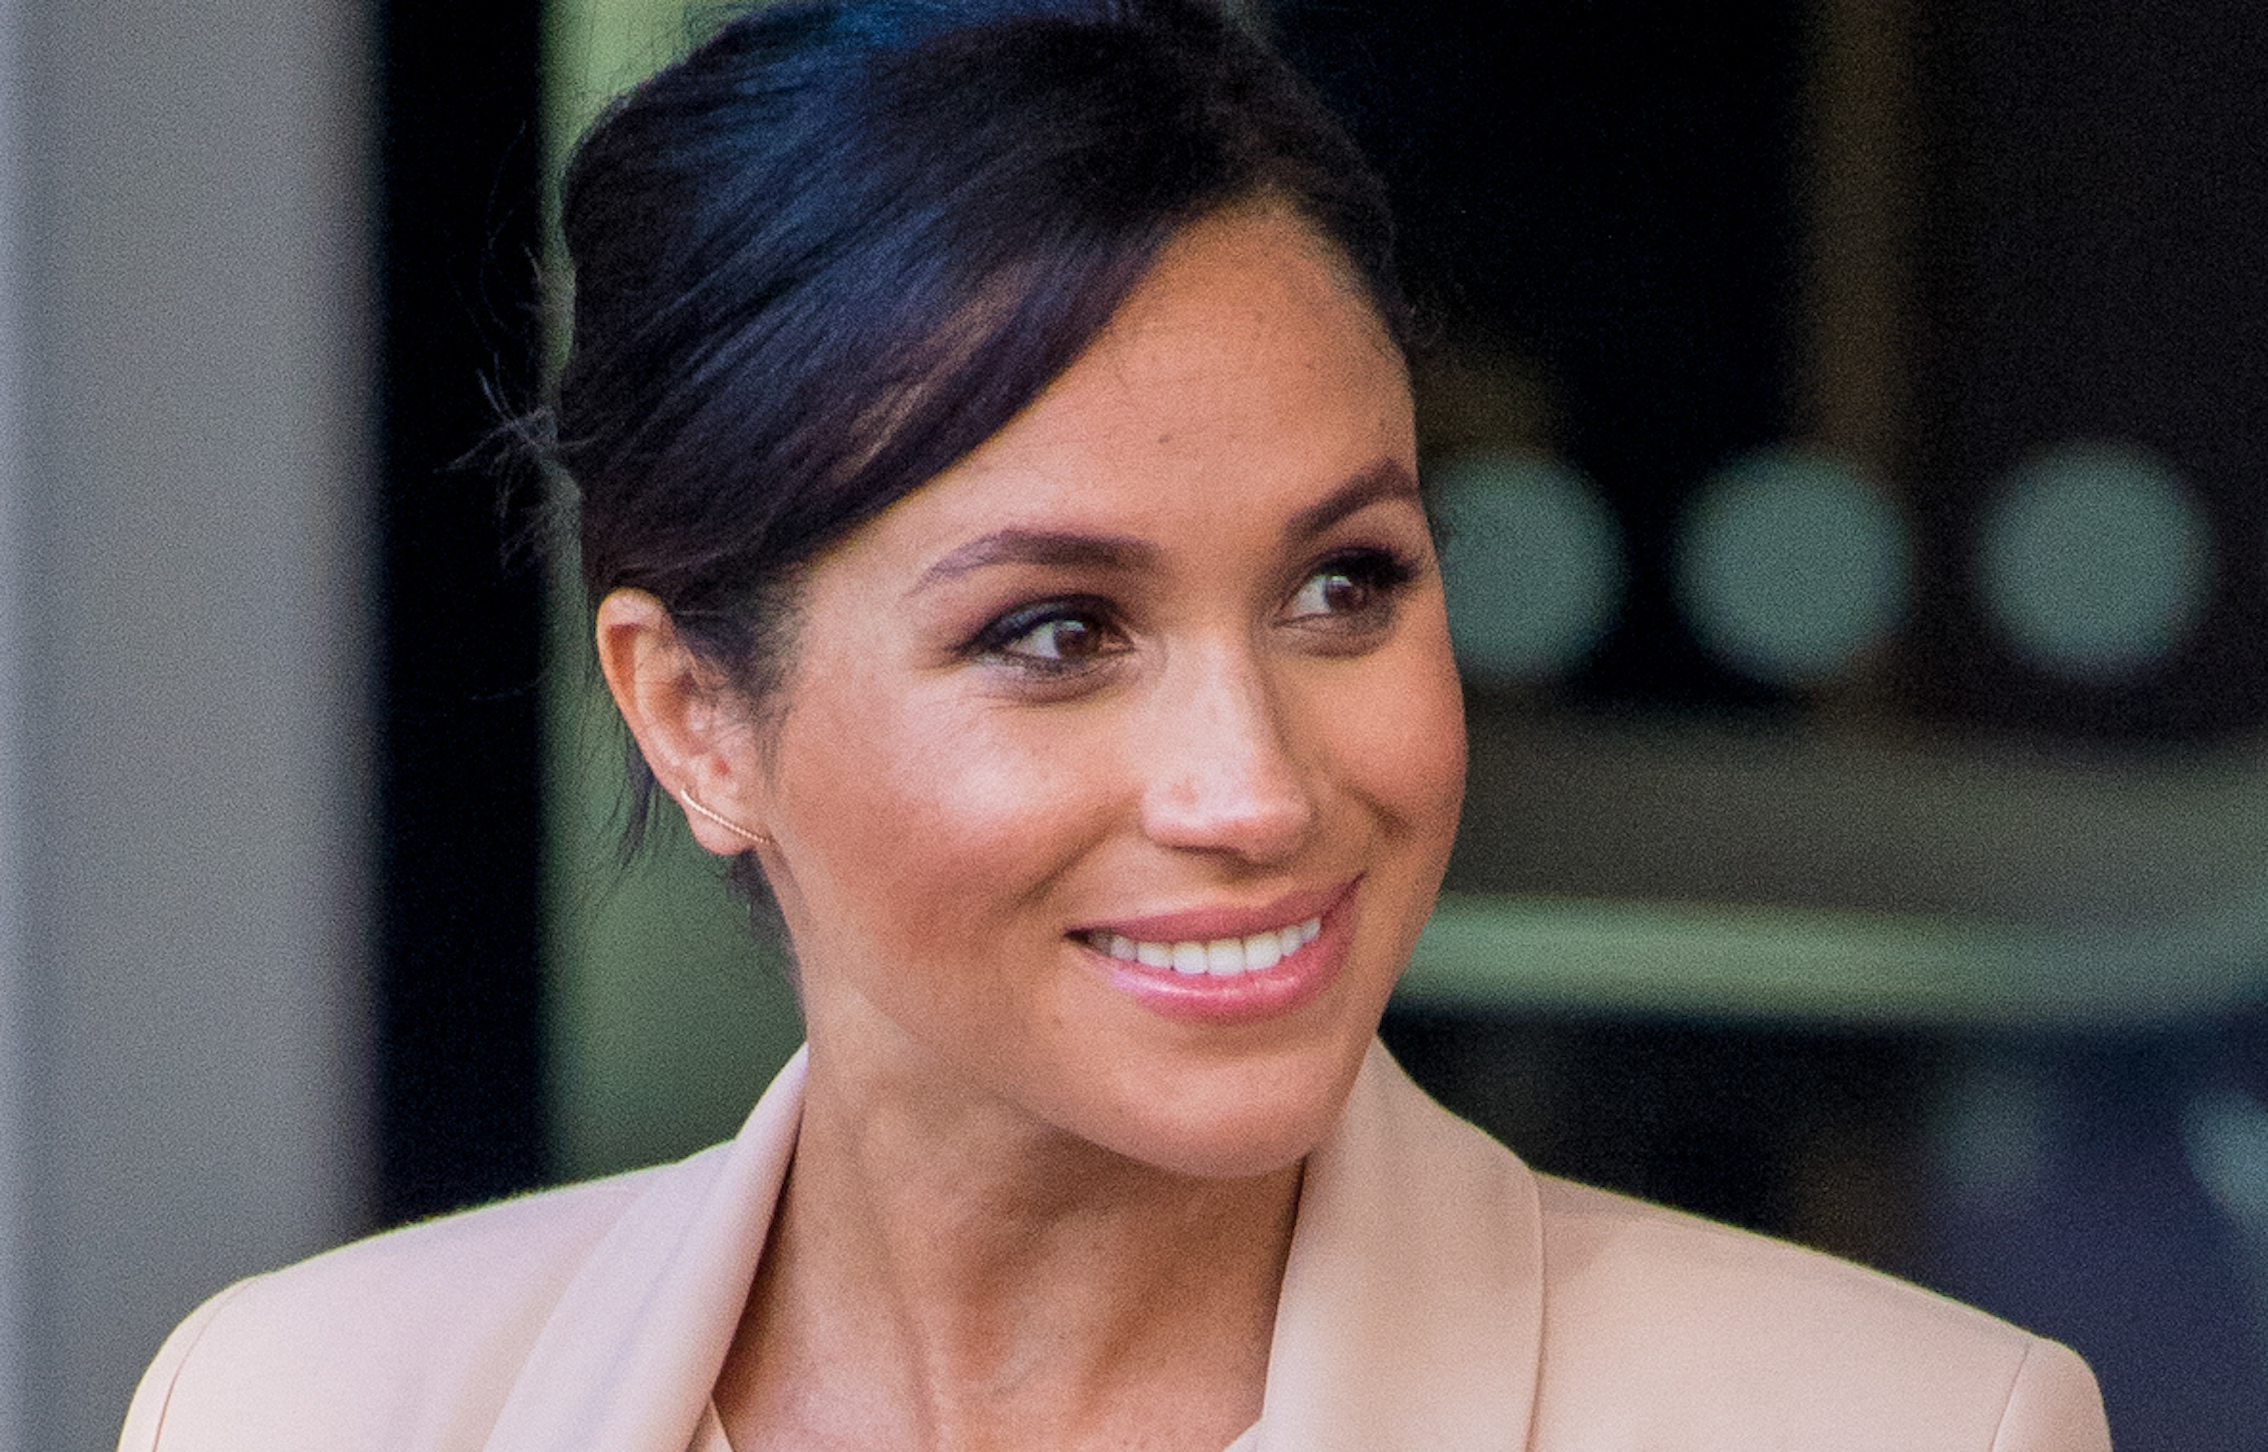 Warnings made about Meghan Markle just four days after wedding, Lady C claims